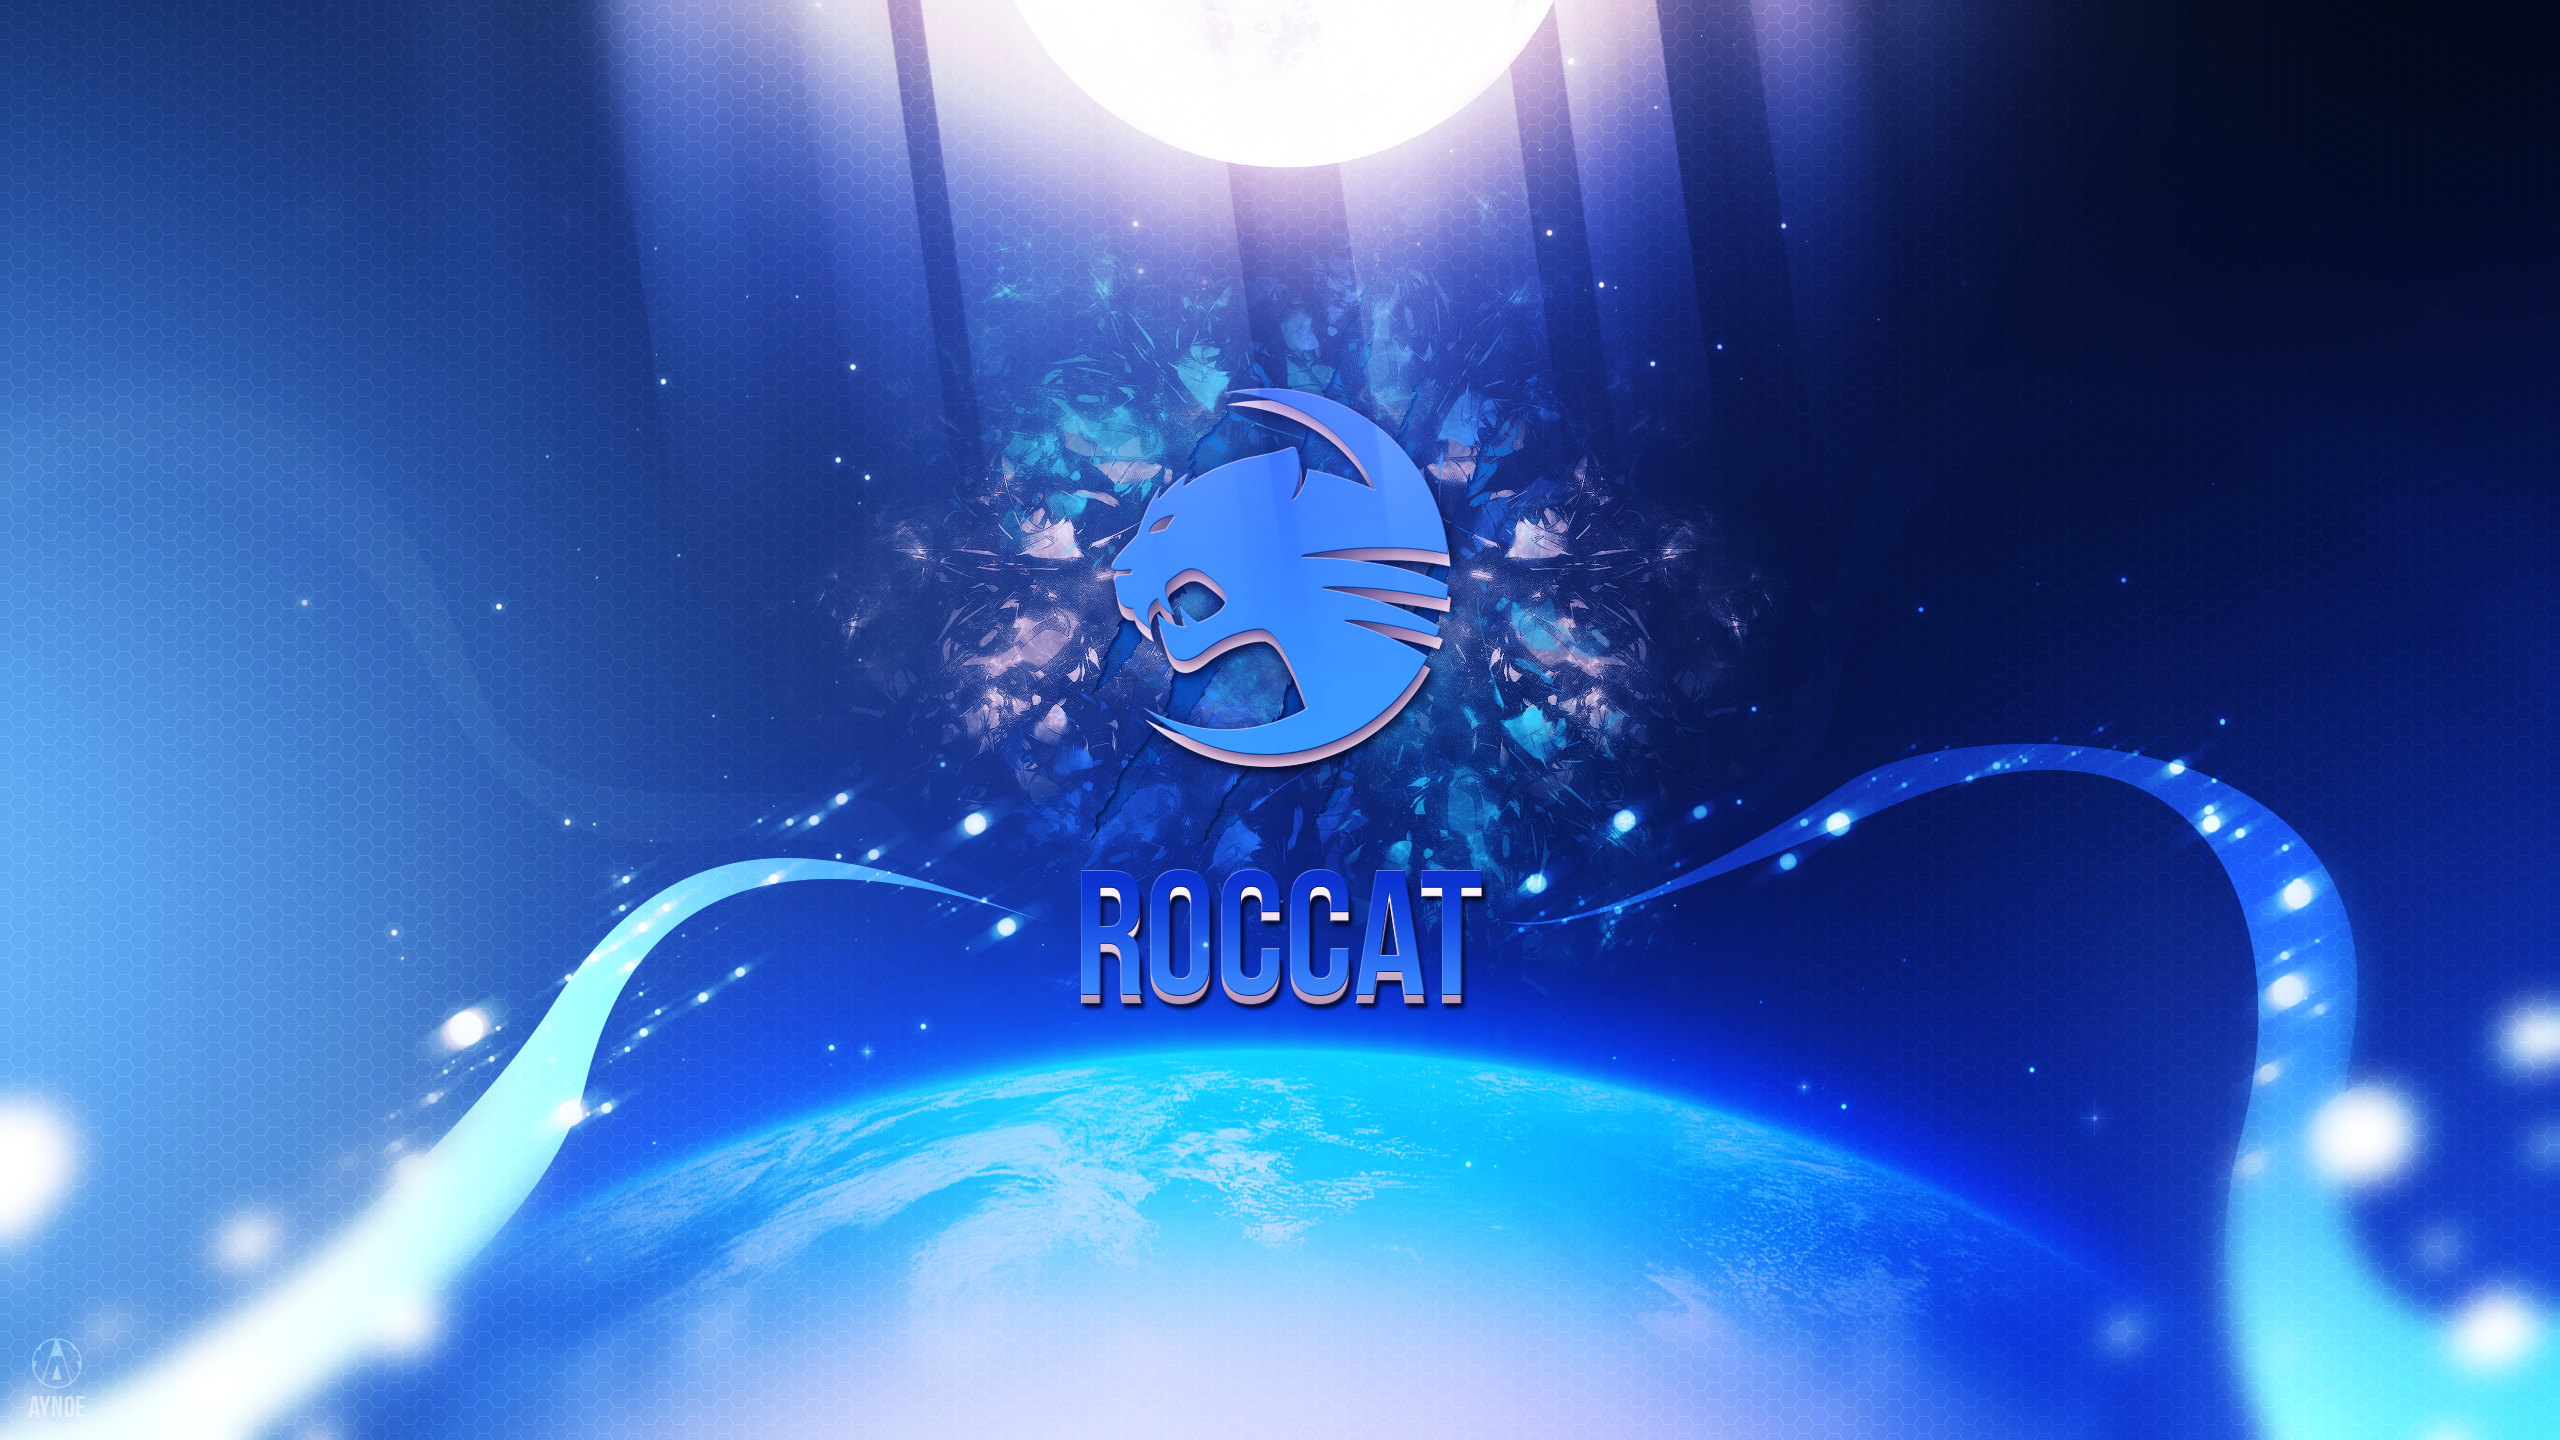 Roccat Wallpapers, Roccat Backgrounds for PC - 100% Quality HD ...